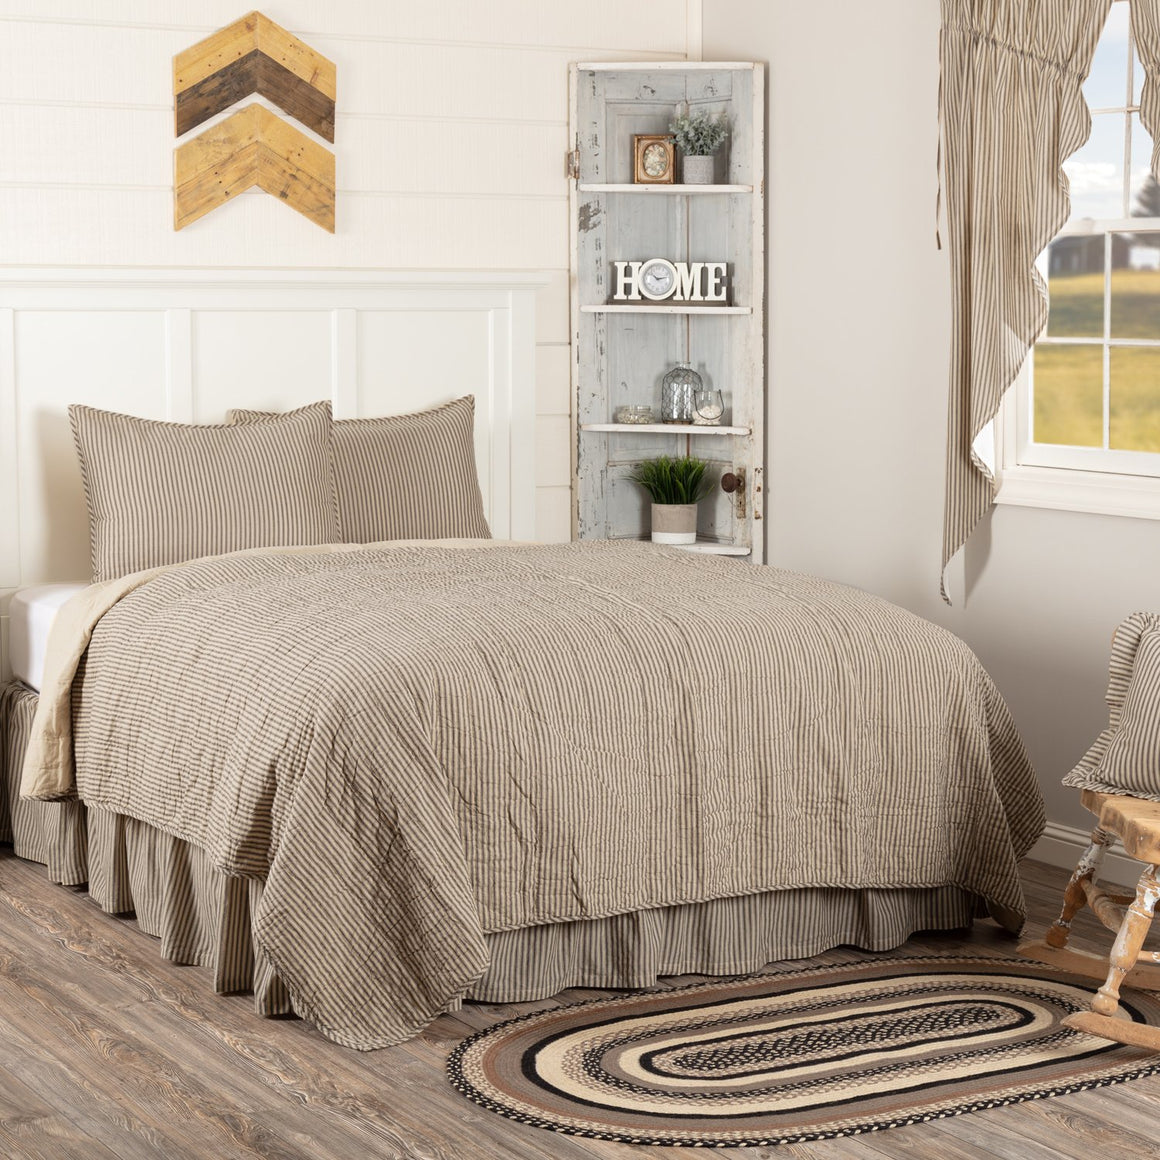 Sawyer Mill Ticking Stripe Quilt Set